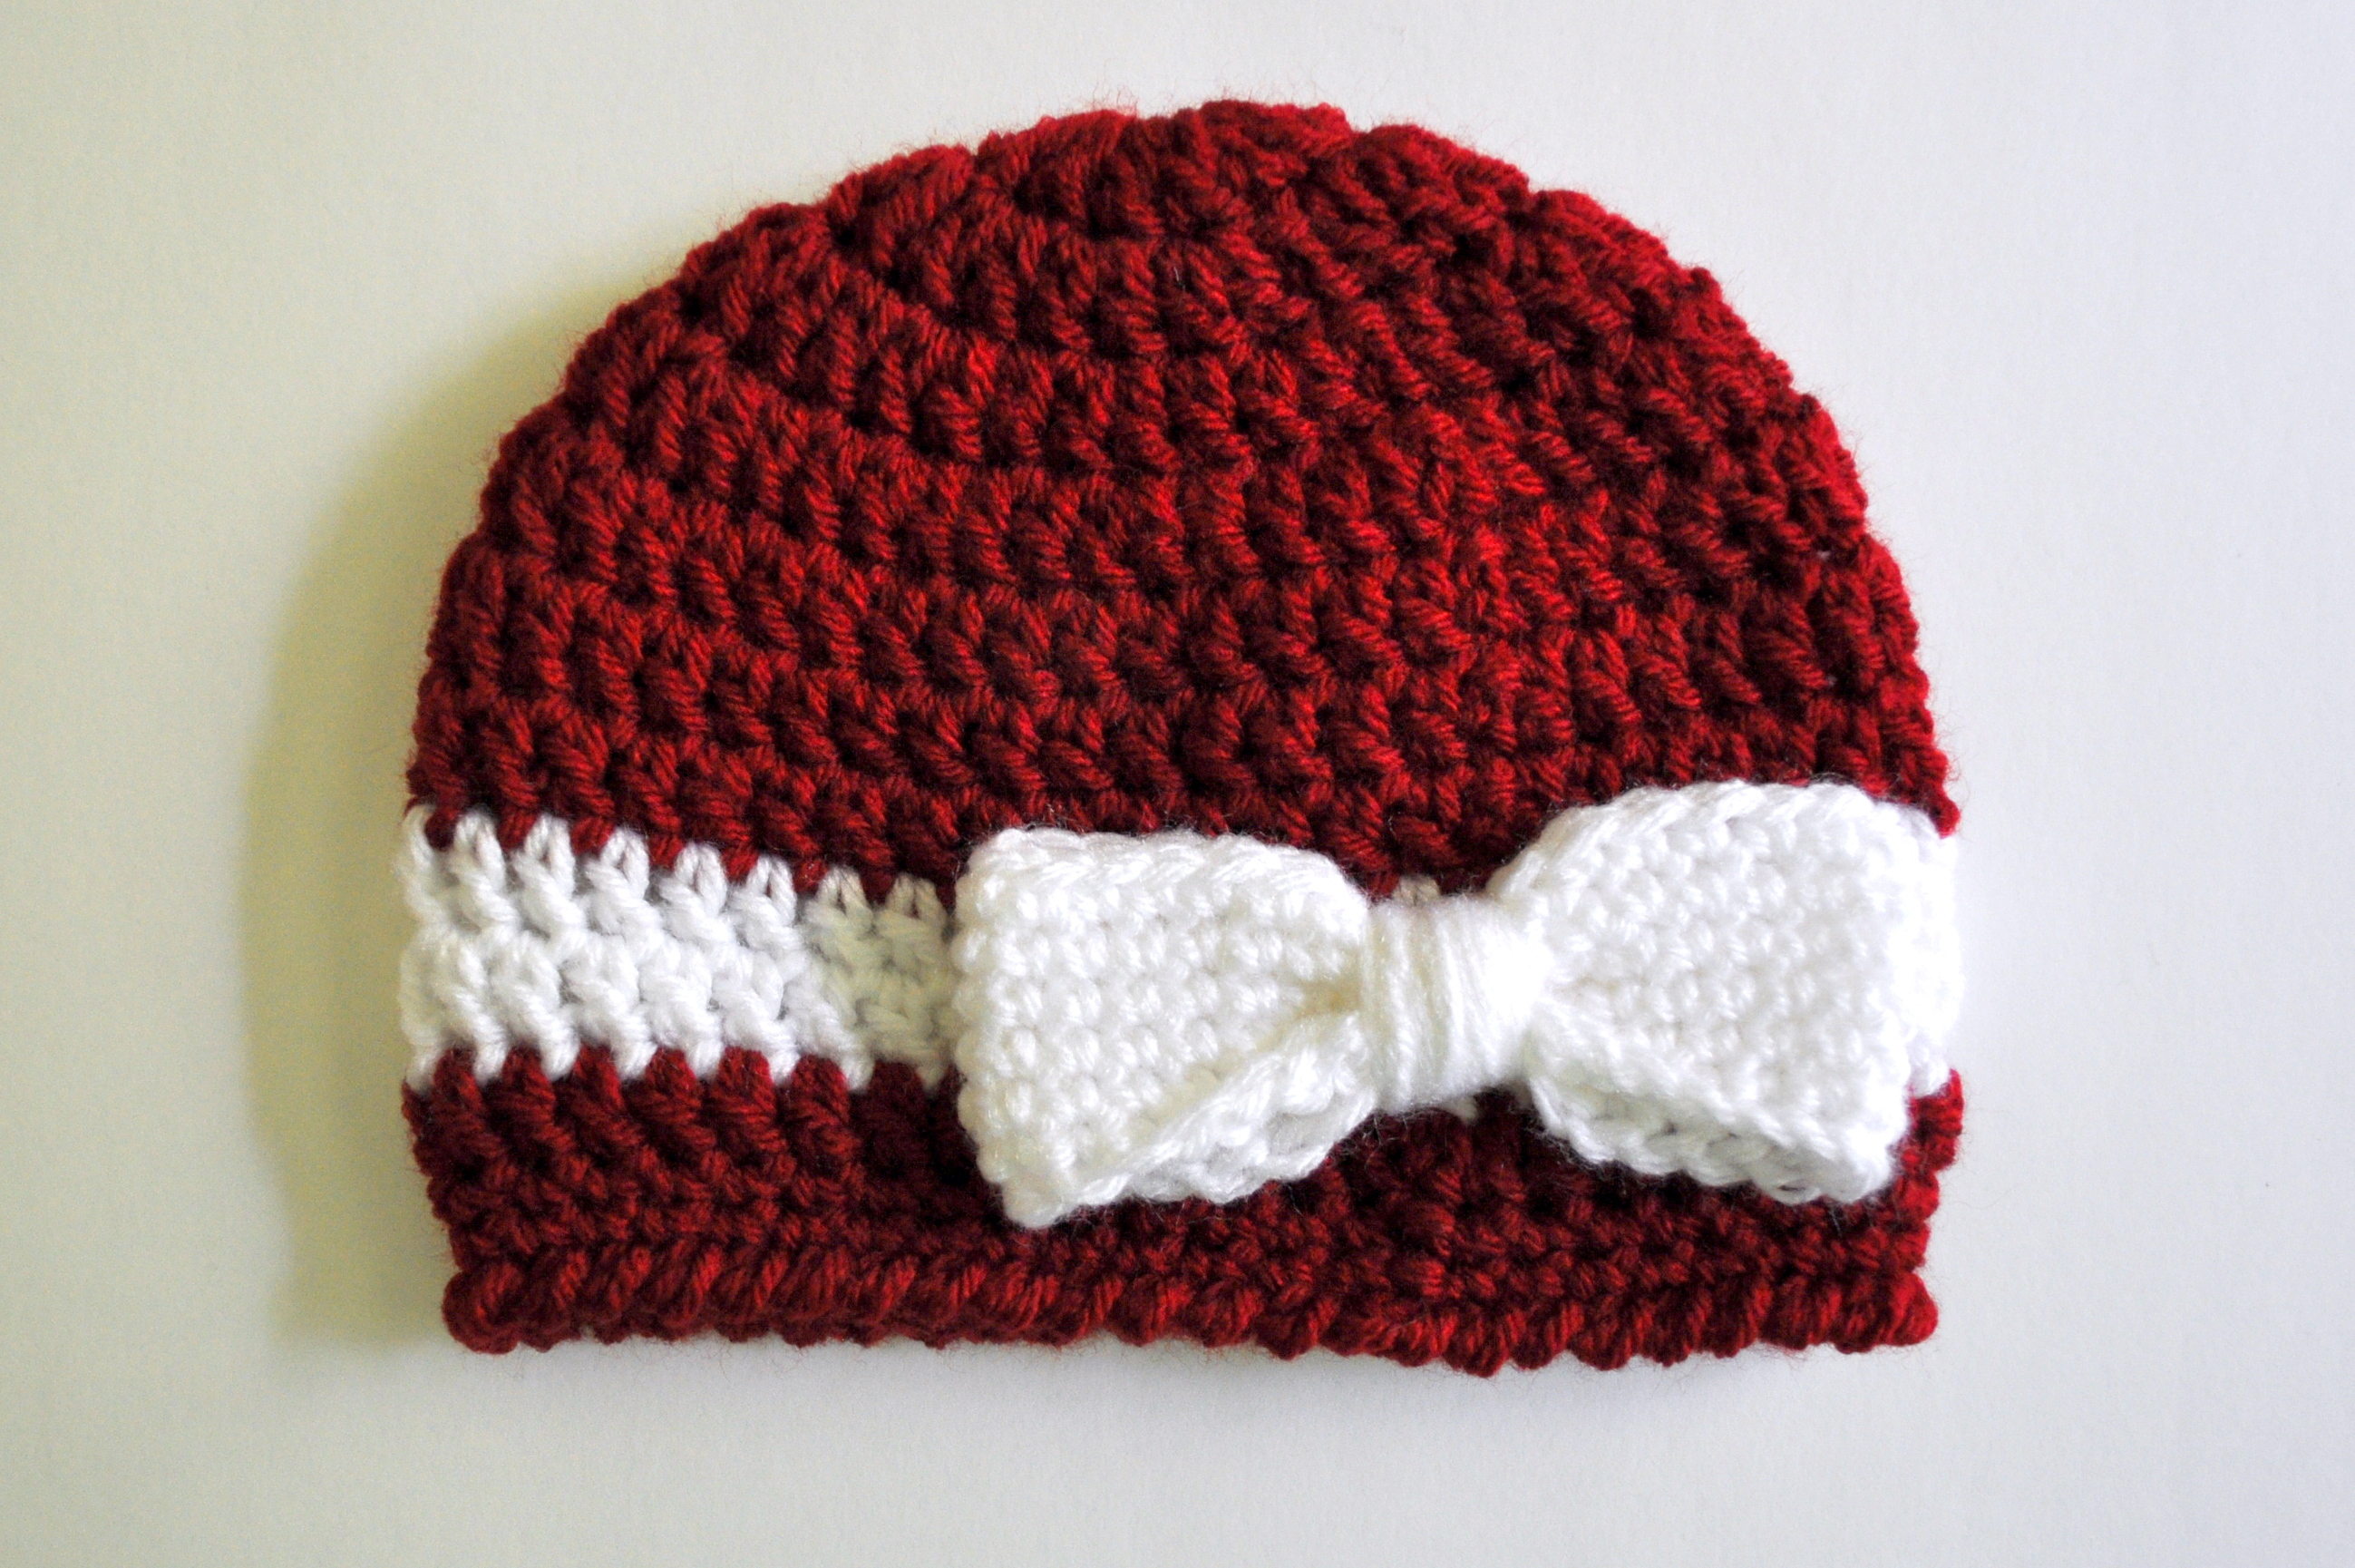 Crochet Patterns Of Baby Hats : Free Pattern: Crochet Bow and Ribbon Baby Hat Classy Crochet